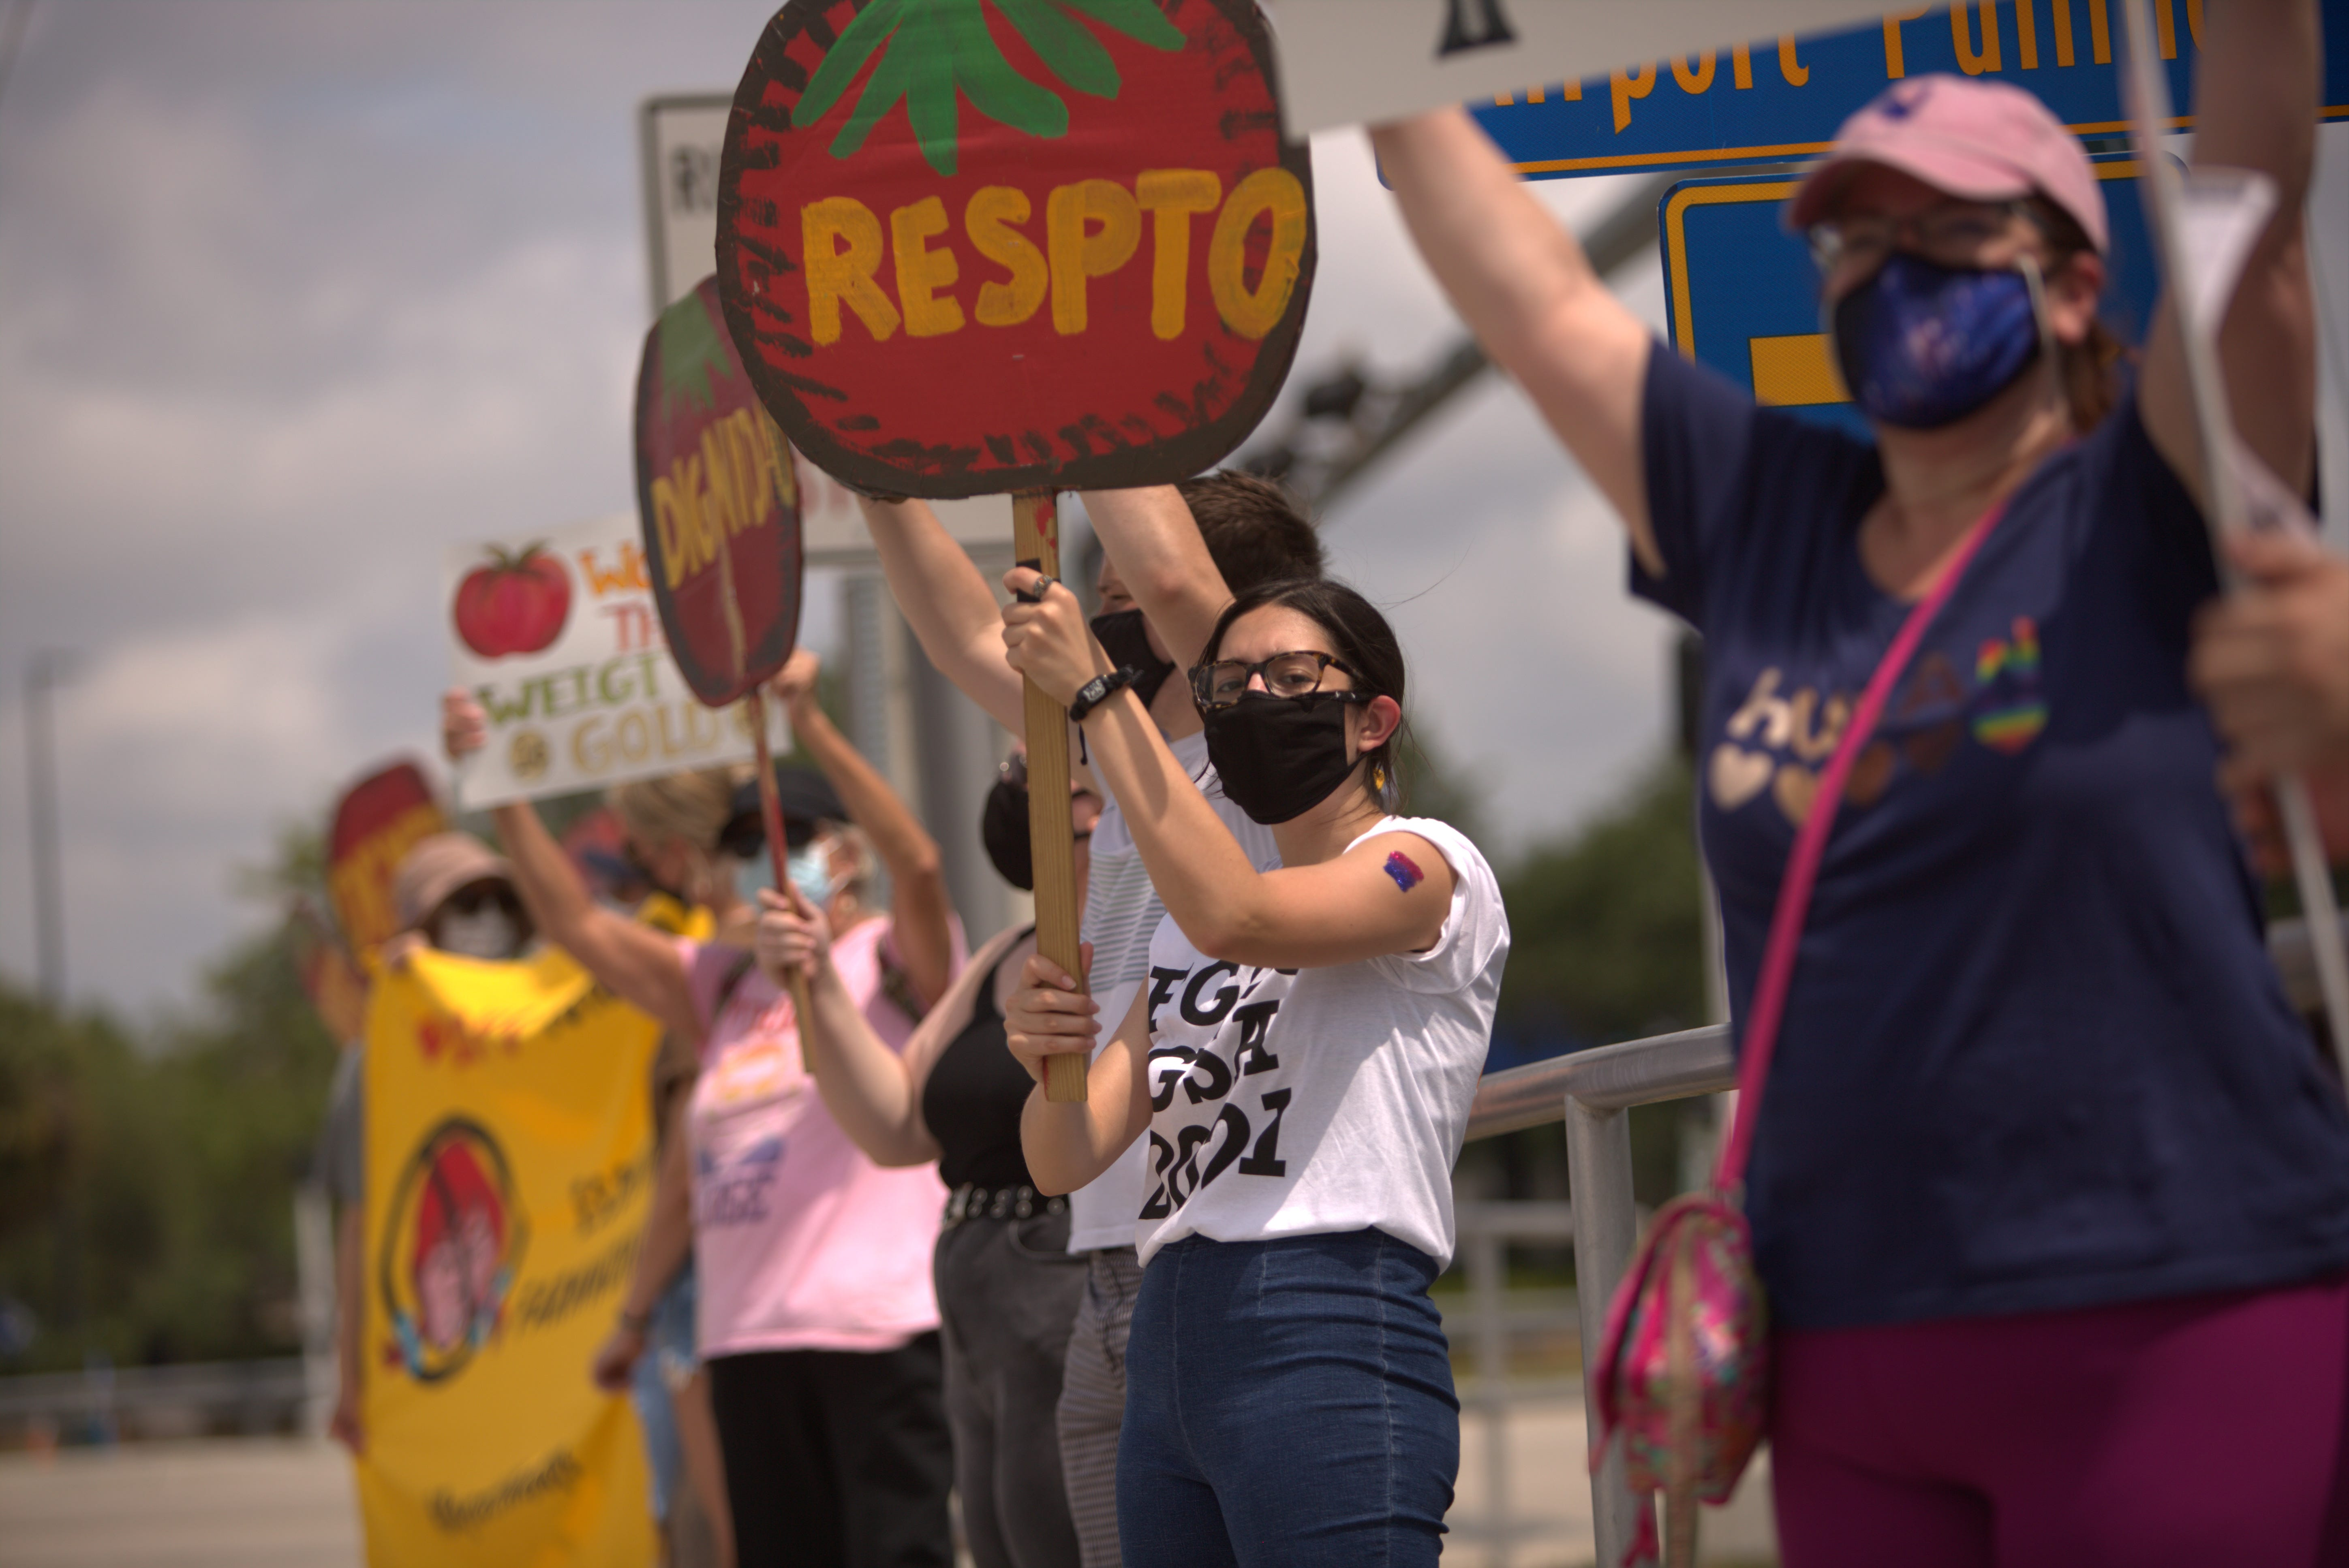 'Use our voices.' Protestors challenge Wendy's to protect farmworkers 3